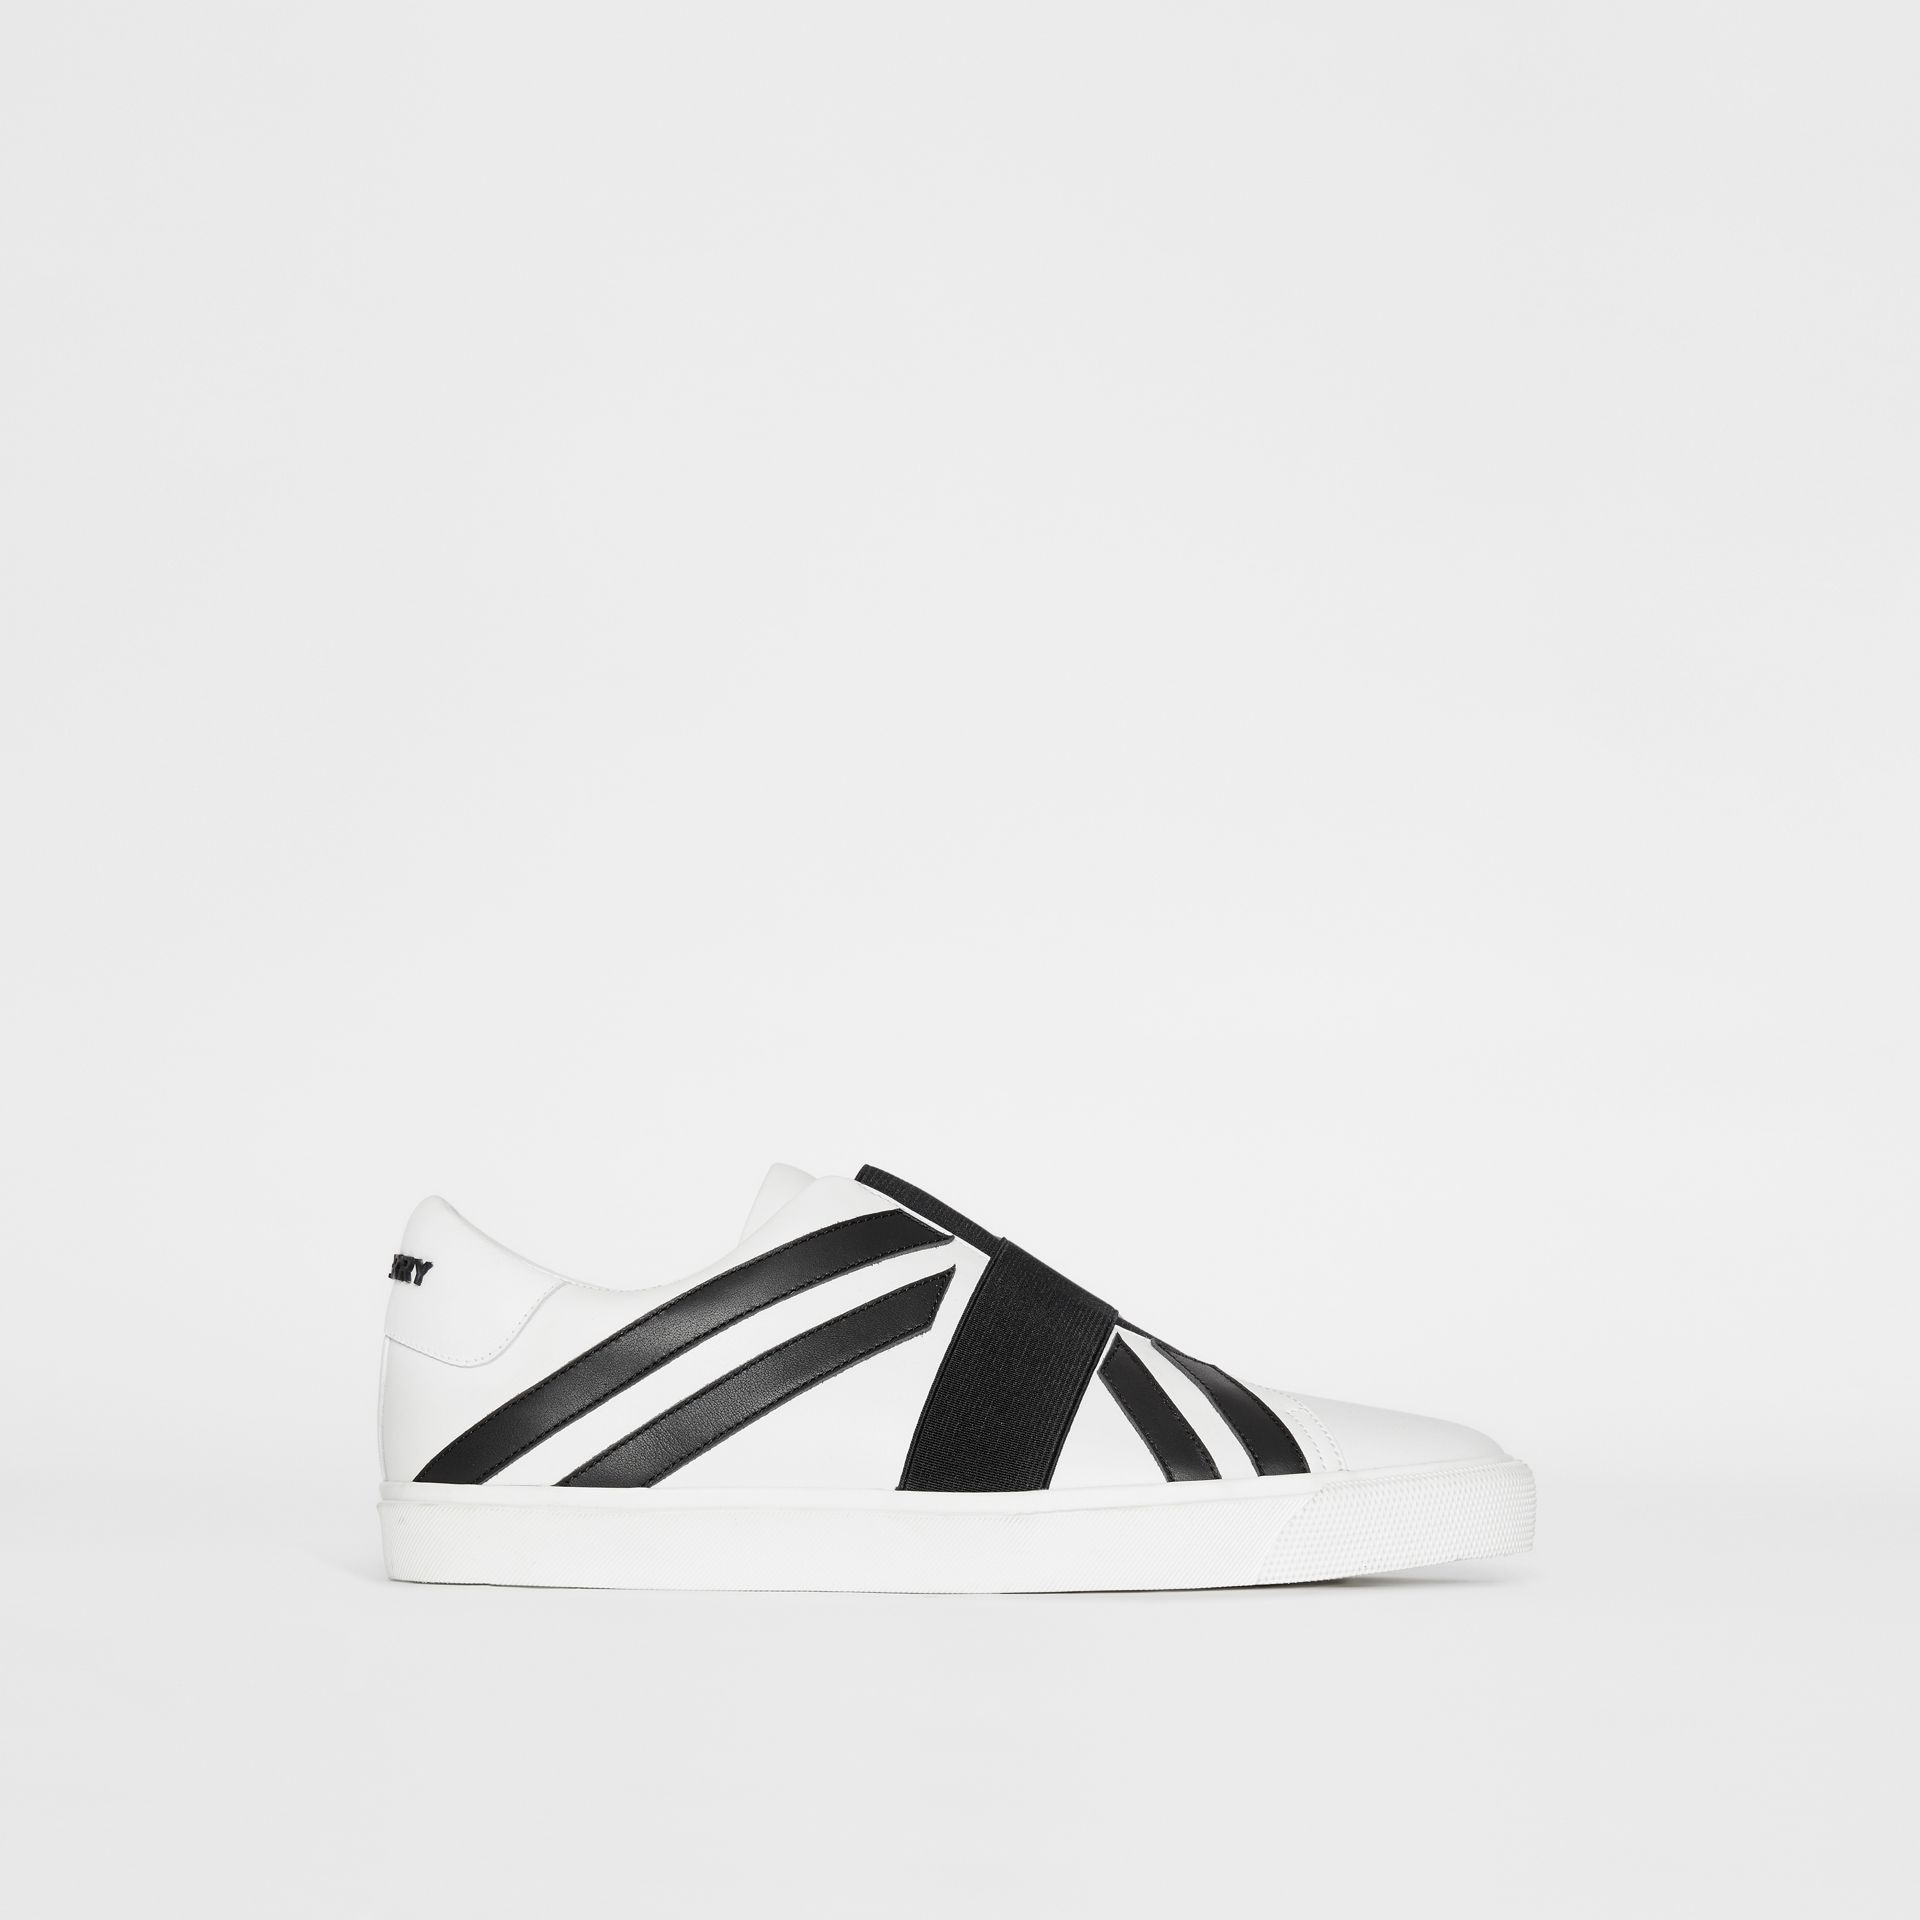 Union Jack Motif Slip-on Sneakers in White - Men | Burberry United Kingdom - gallery image 4